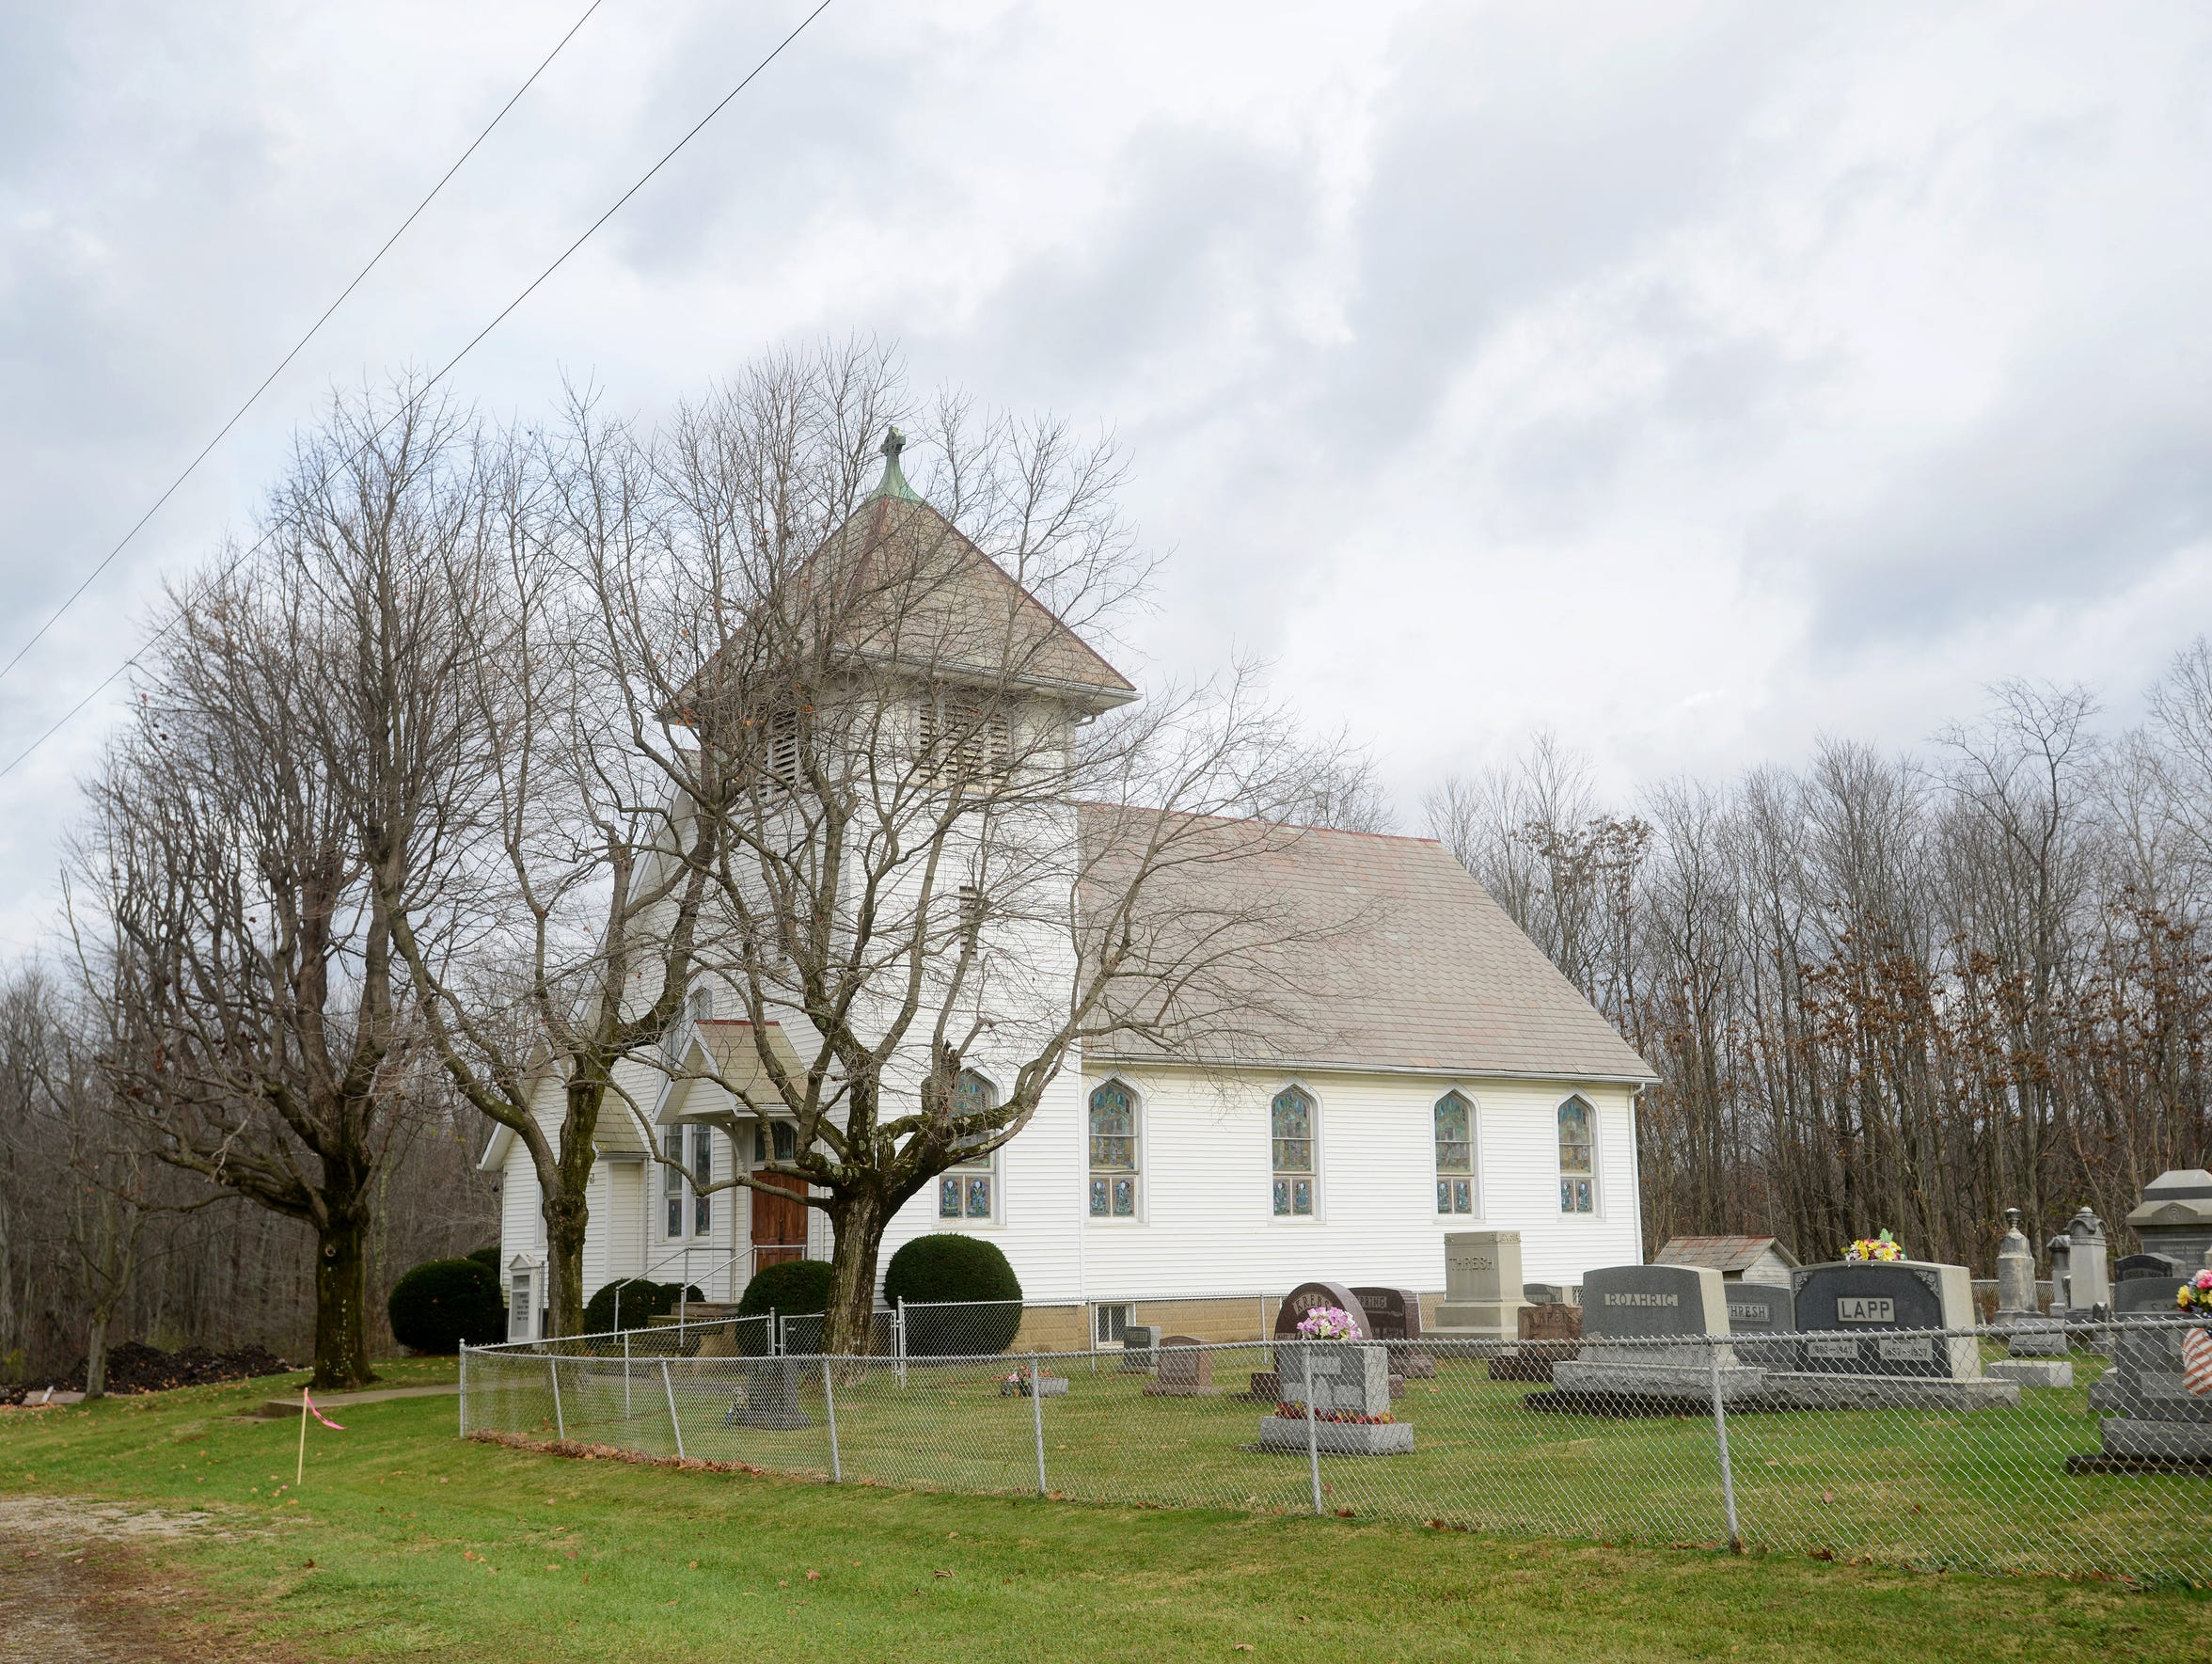 Zion Lutheran Church was built in 1912 on Ferncliff